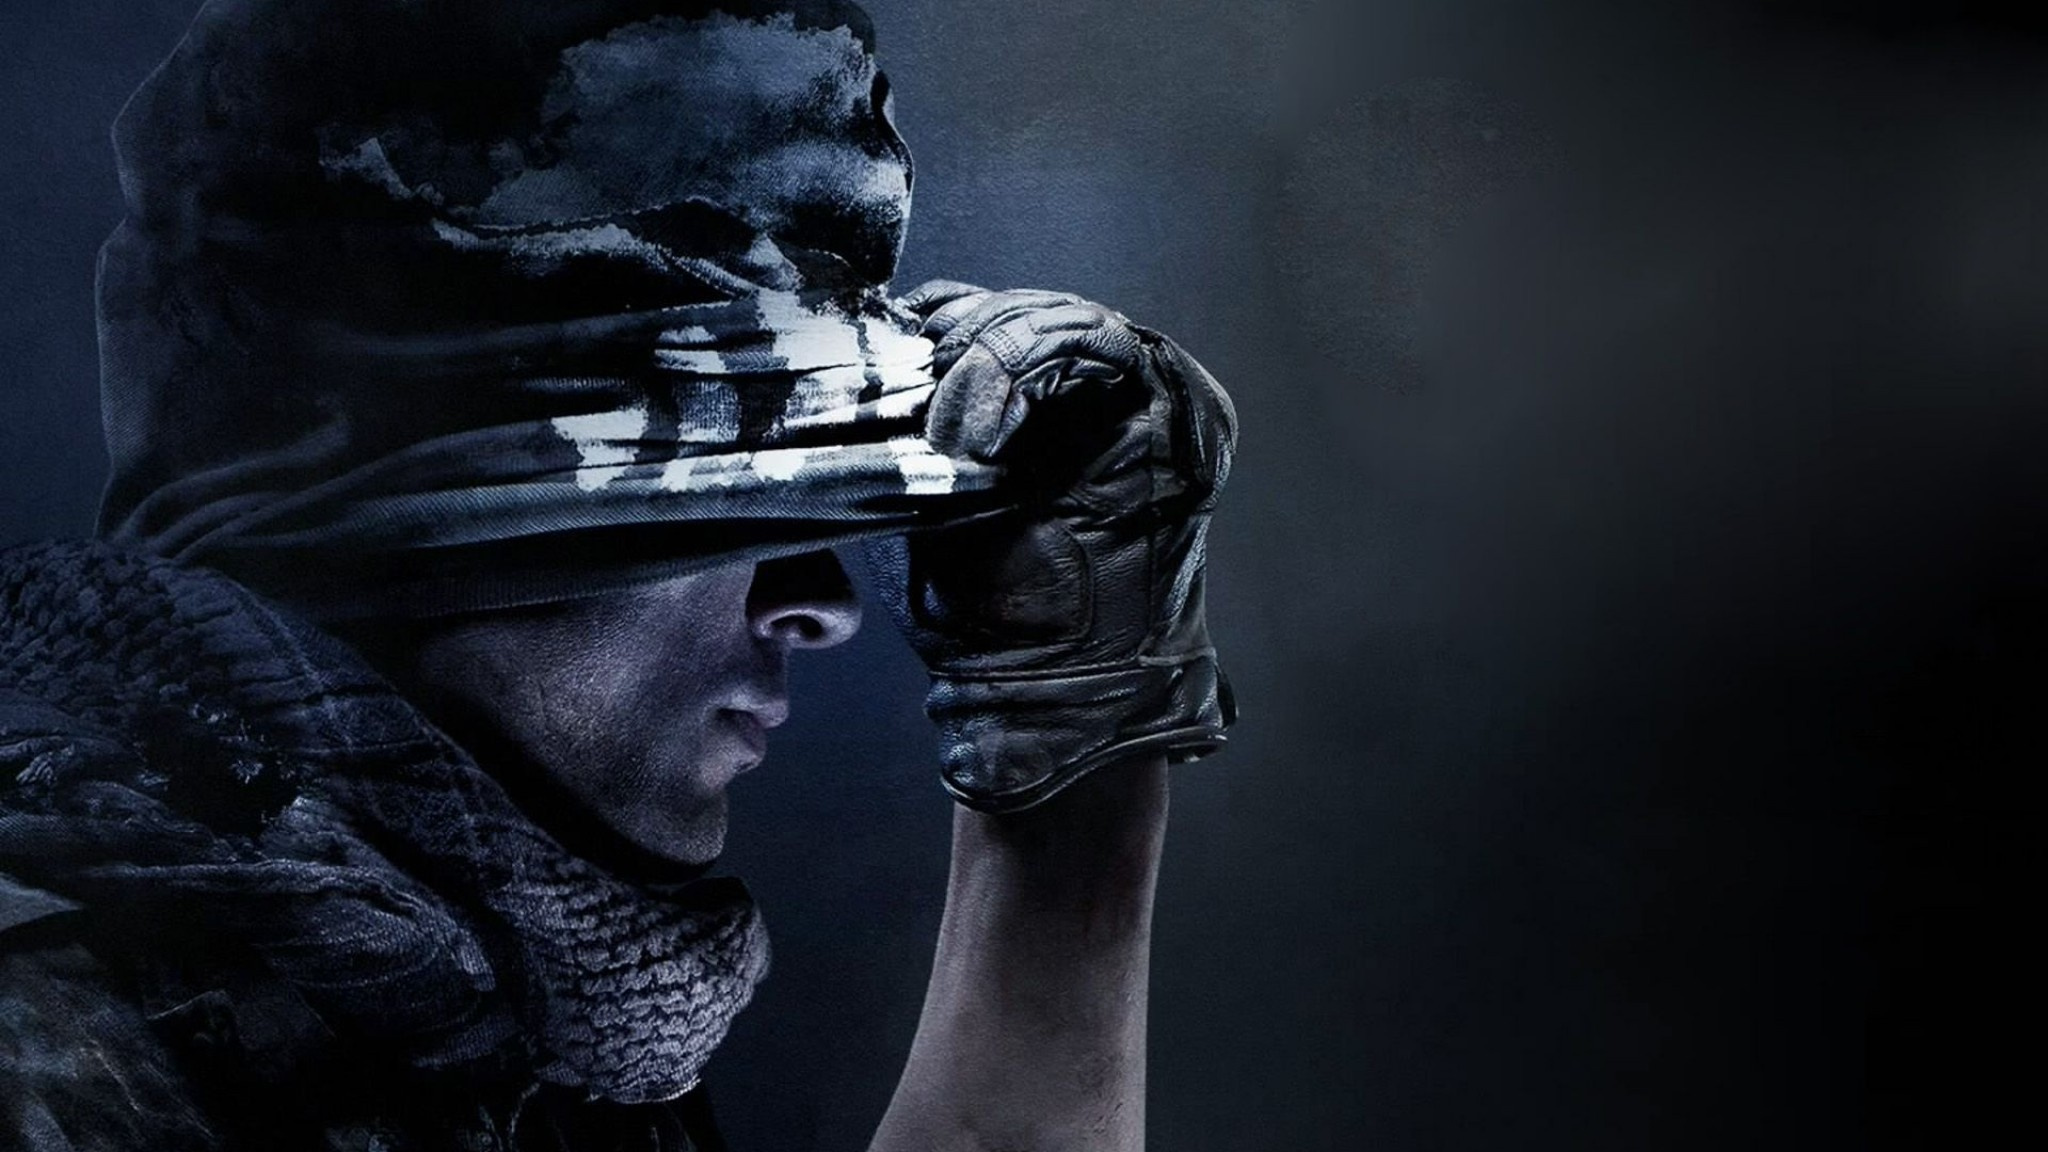 Gaming Wallpaper Cod Video game – call of duty: